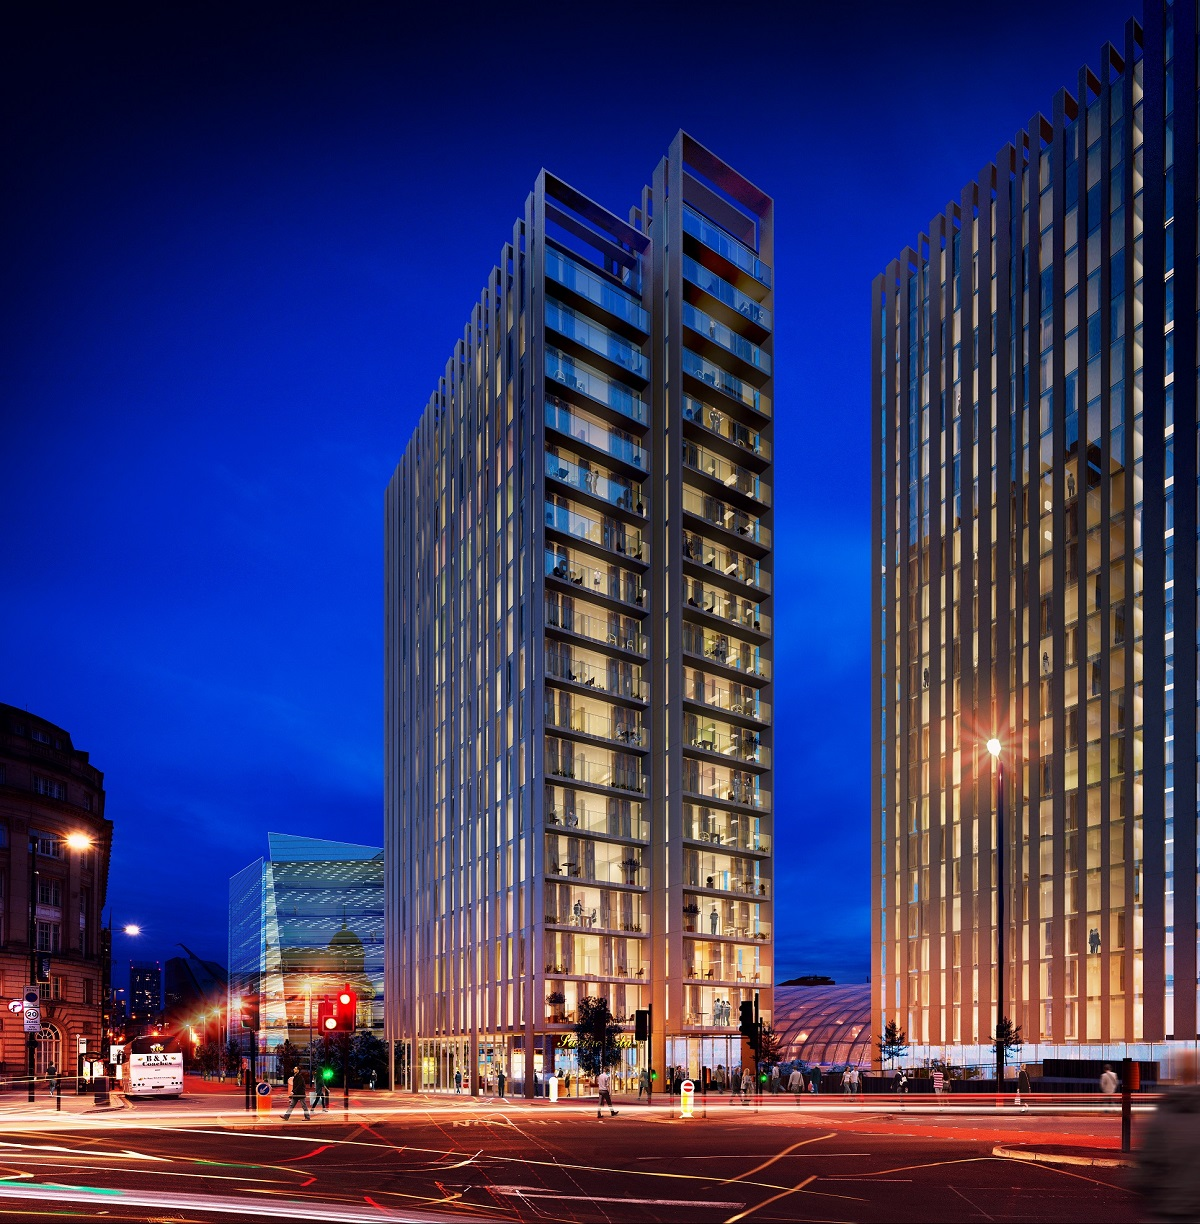 Roann Limited Appointed as Supplier for Residential Scheme